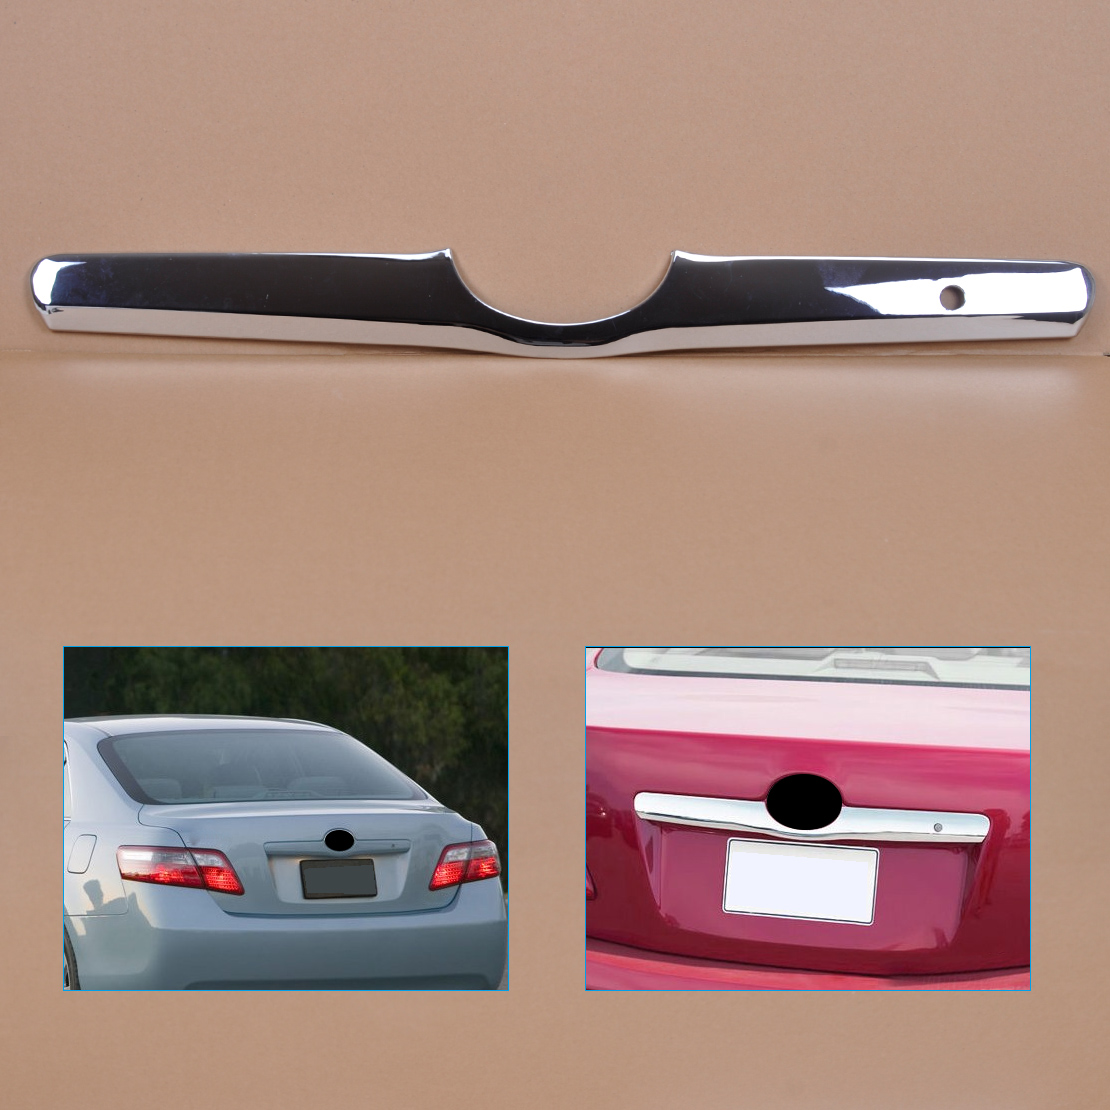 DWCX Car Chrome Decorative Rear Door Tailgate Trunk Hatch Trim Bezel Cover Fit for Toyota Camry 2006 2007 2008 2009 2010 2011 цена